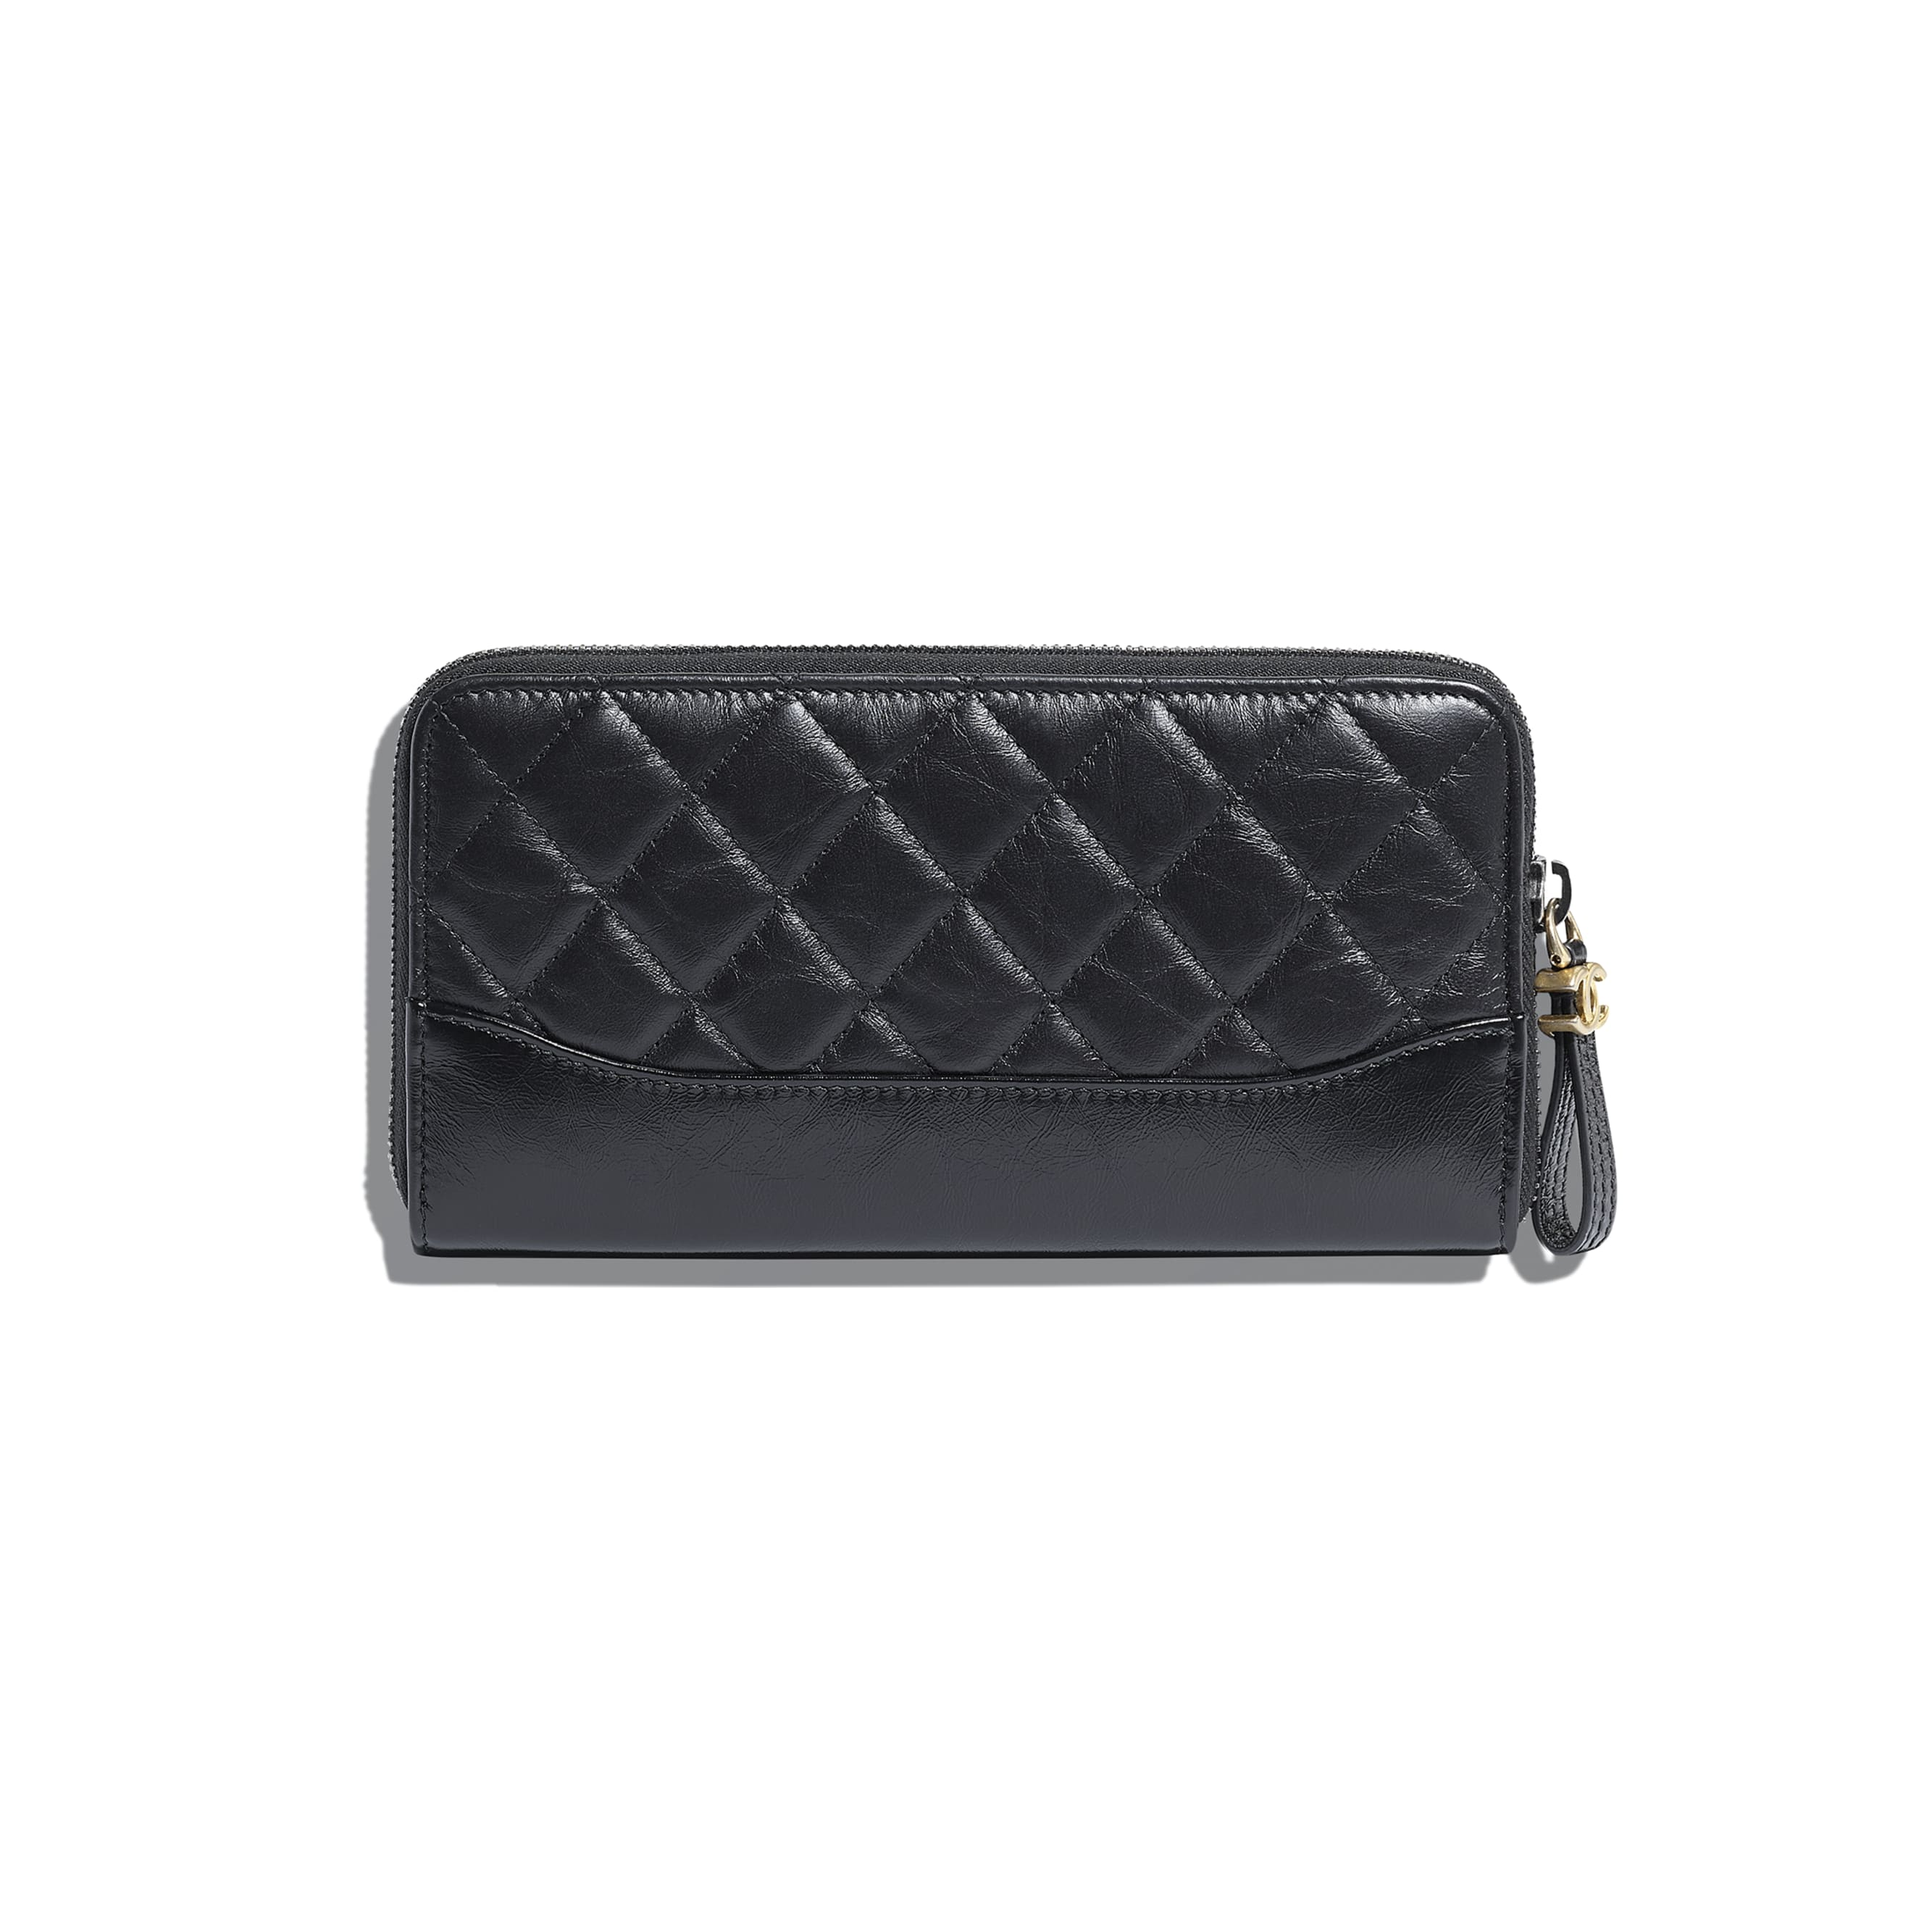 Zip Wallet - Black - Aged Calfskin, Smooth Calfskin, Silver-Tone & Gold-Tone Metal - Alternative view - see standard sized version